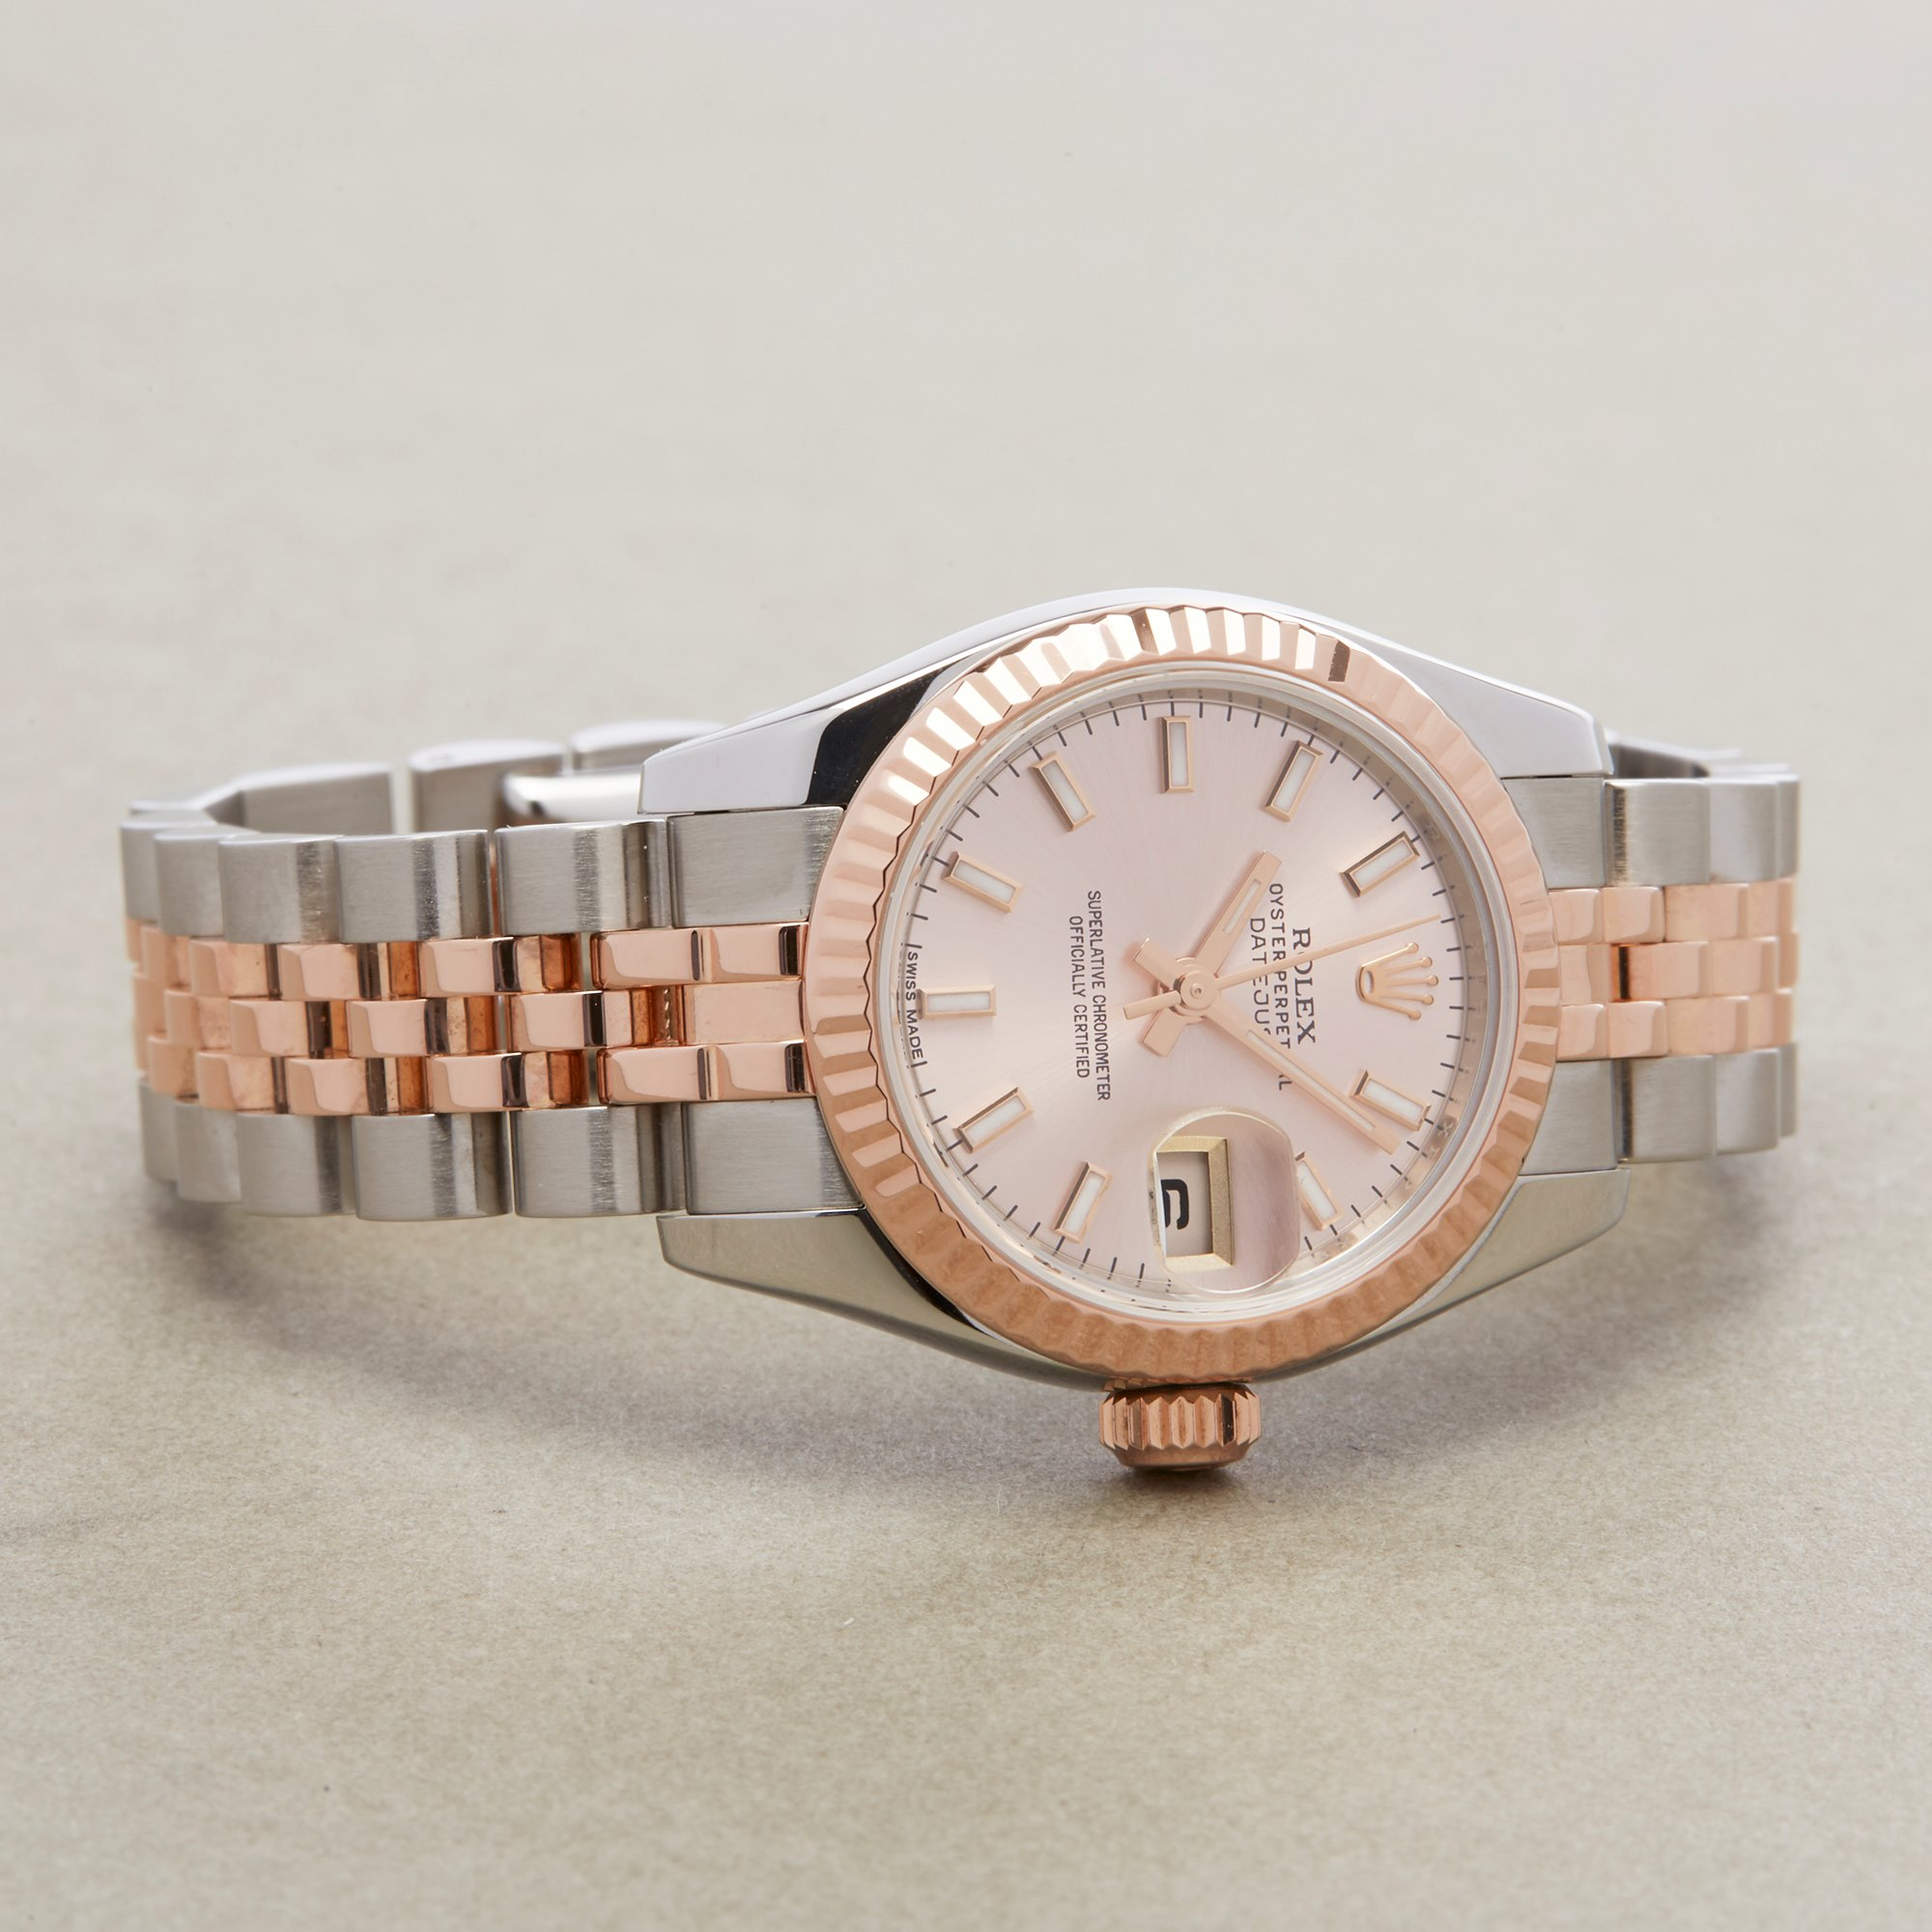 Rolex Datejust 26 179171 Ladies Rose Gold & Stainless Steel Watch - Image 9 of 10